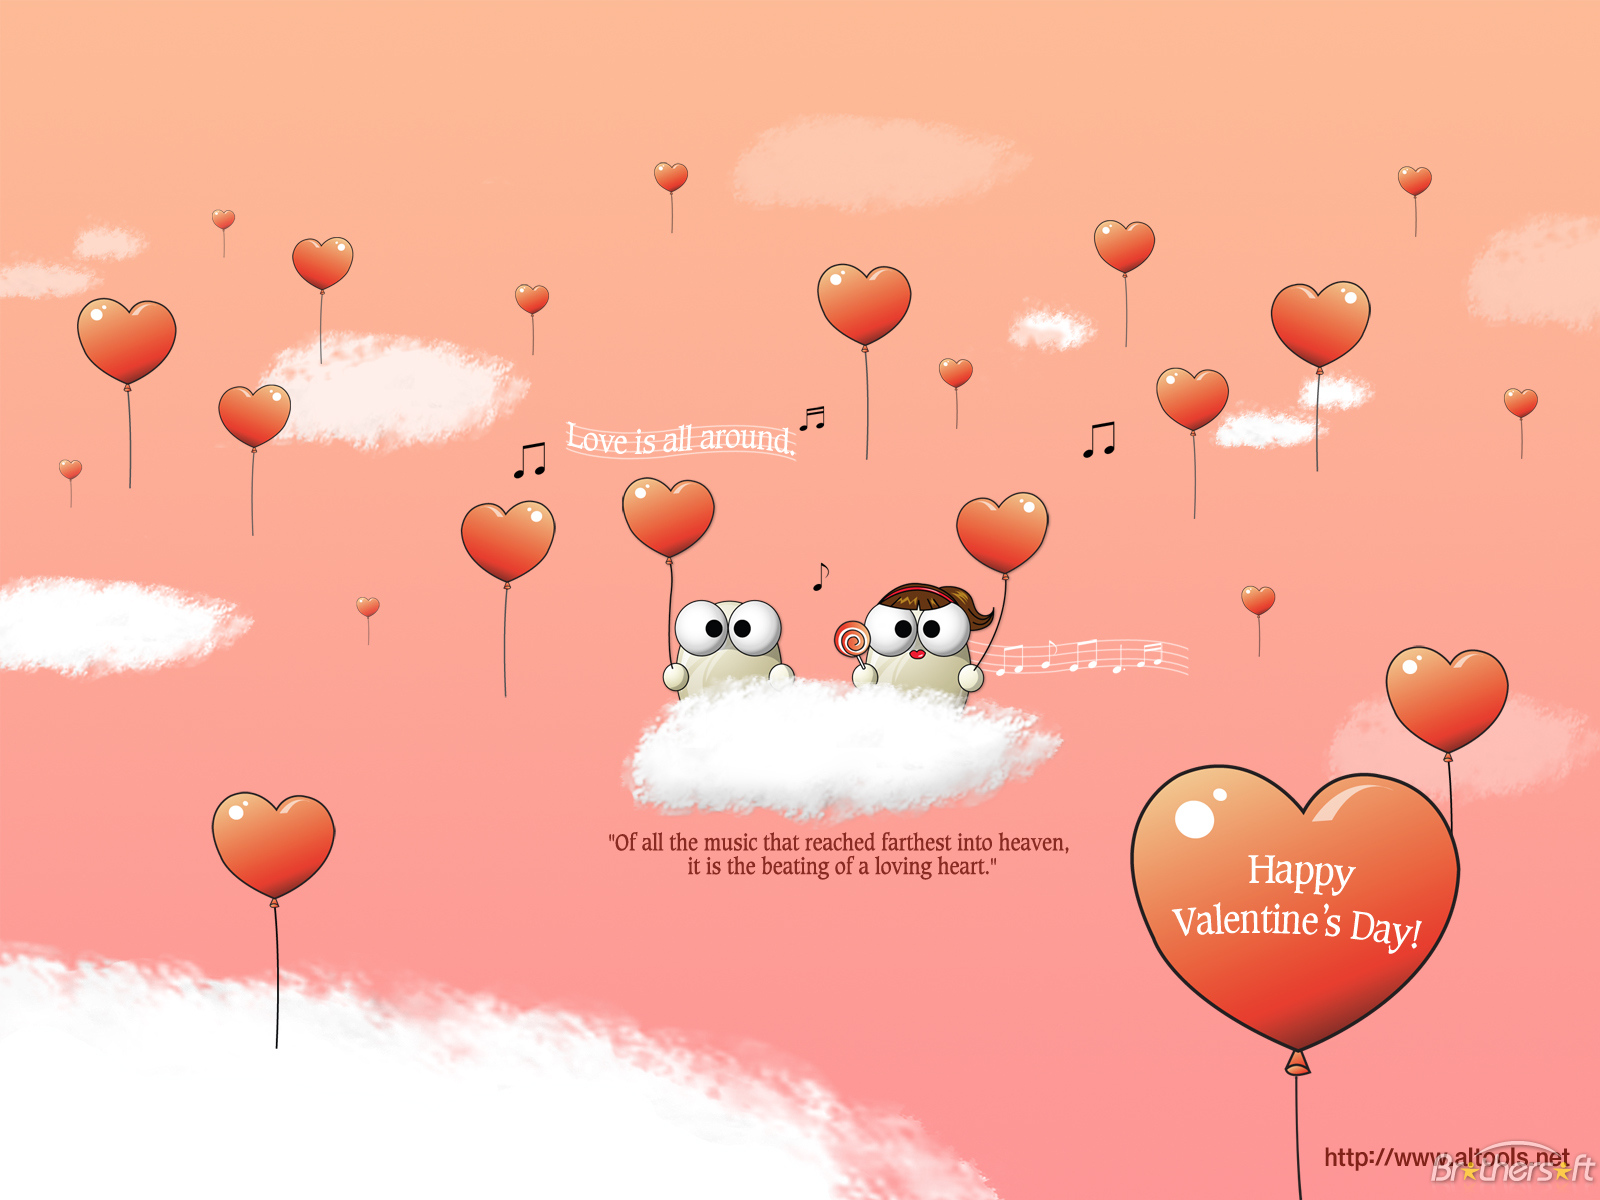 wallpaper 12 valentines day wallpaper 13 valentines day wallpaper 14 1600x1200